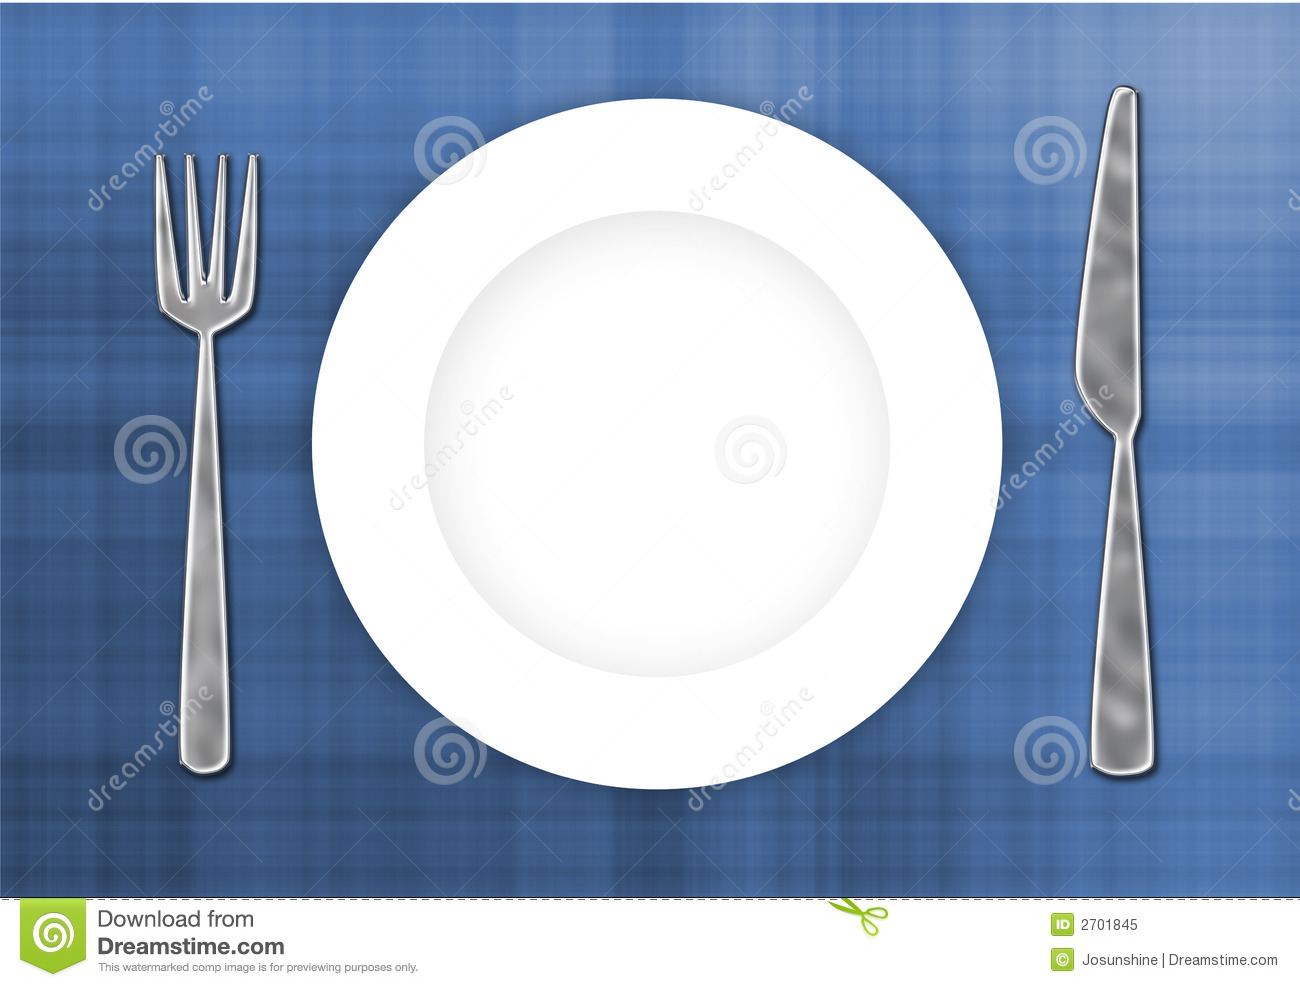 Cutlery Amp Plate Royalty Free Stock Photo Cartoondealer